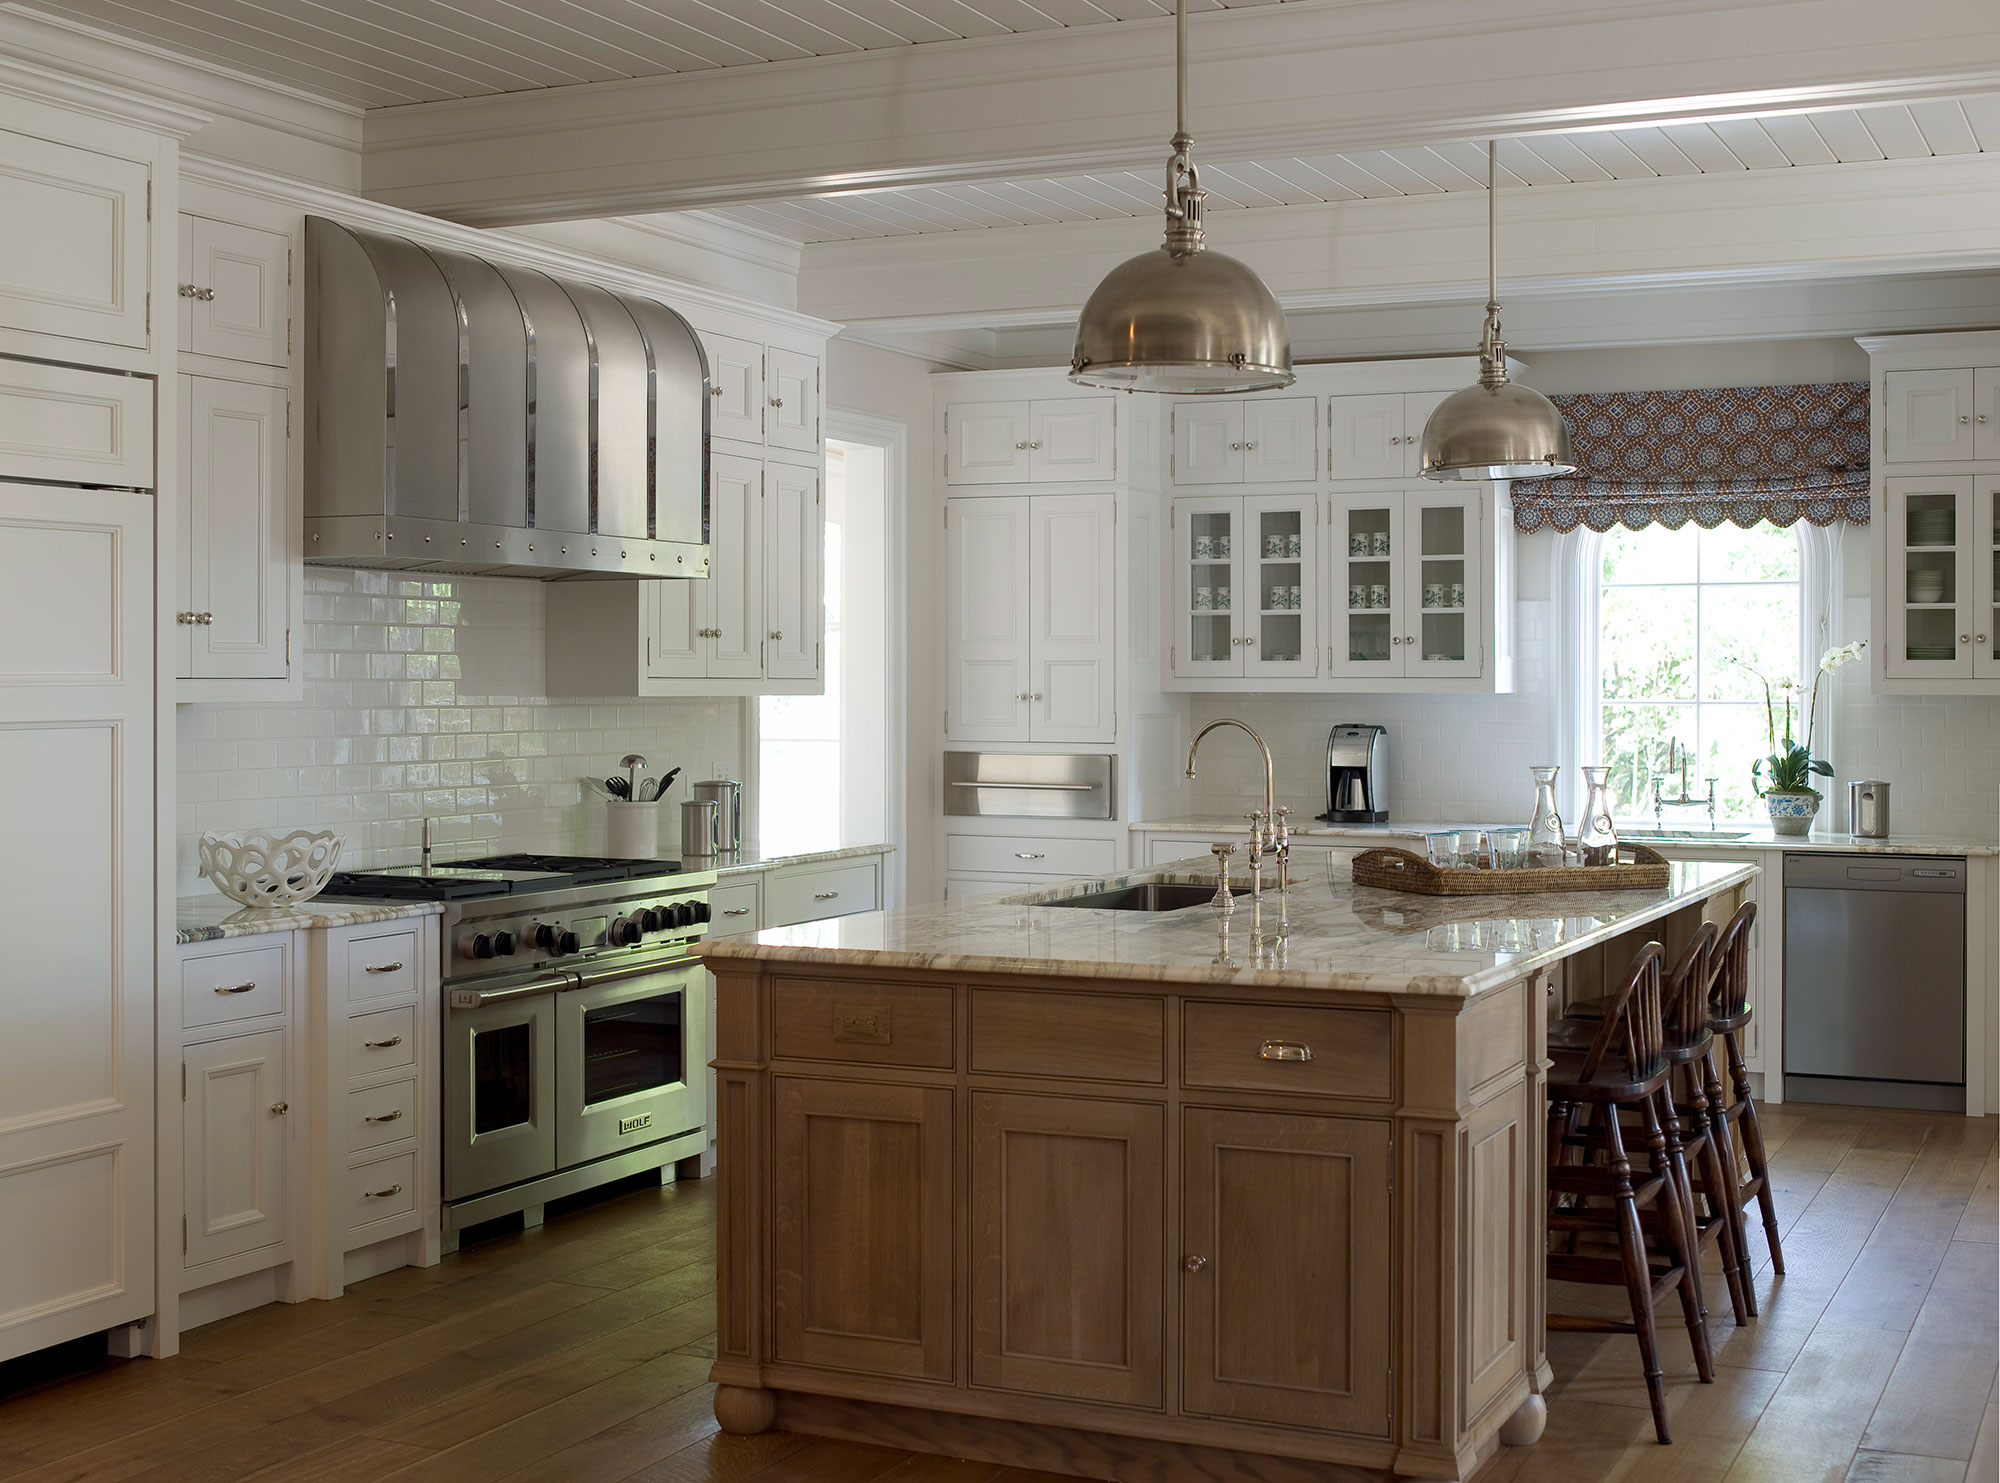 Sea Island, Georgia, kitchen with large island and customer hood. By James Michael Howard